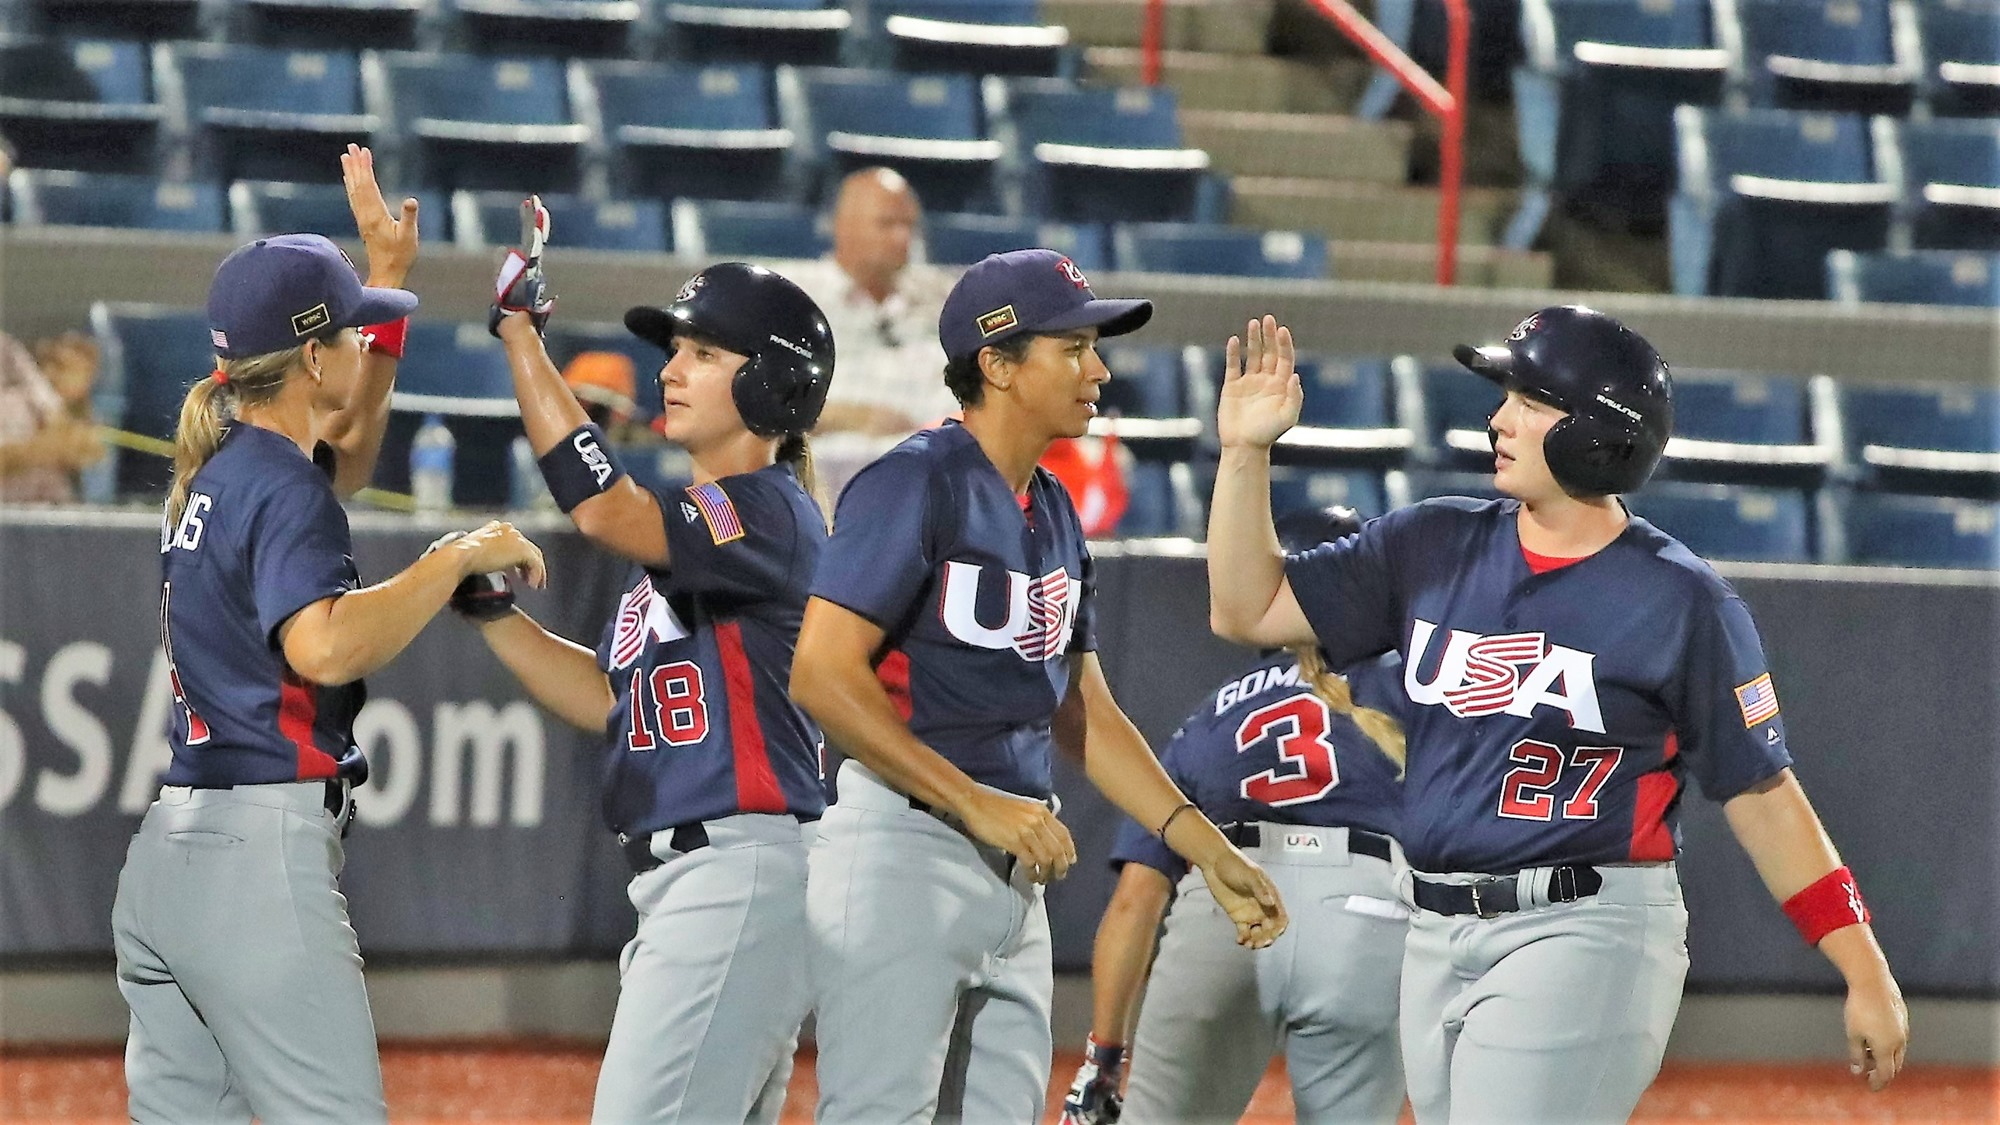 The USA celebrate after beating The Netherlands